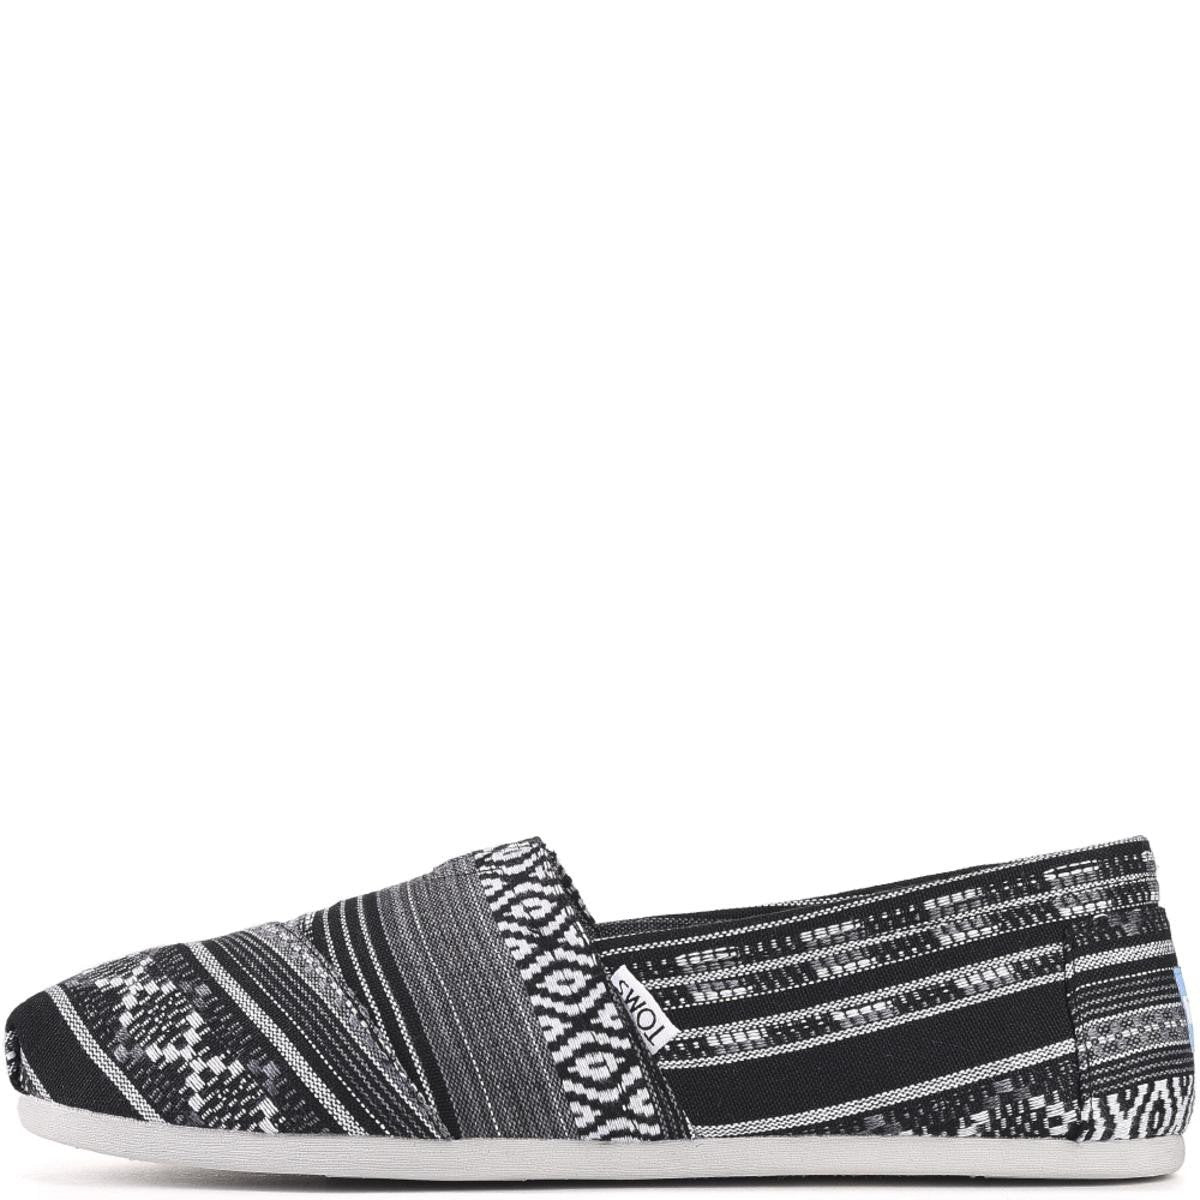 Toms for Men: Classic Black/White Woven Linear Cultural Flats